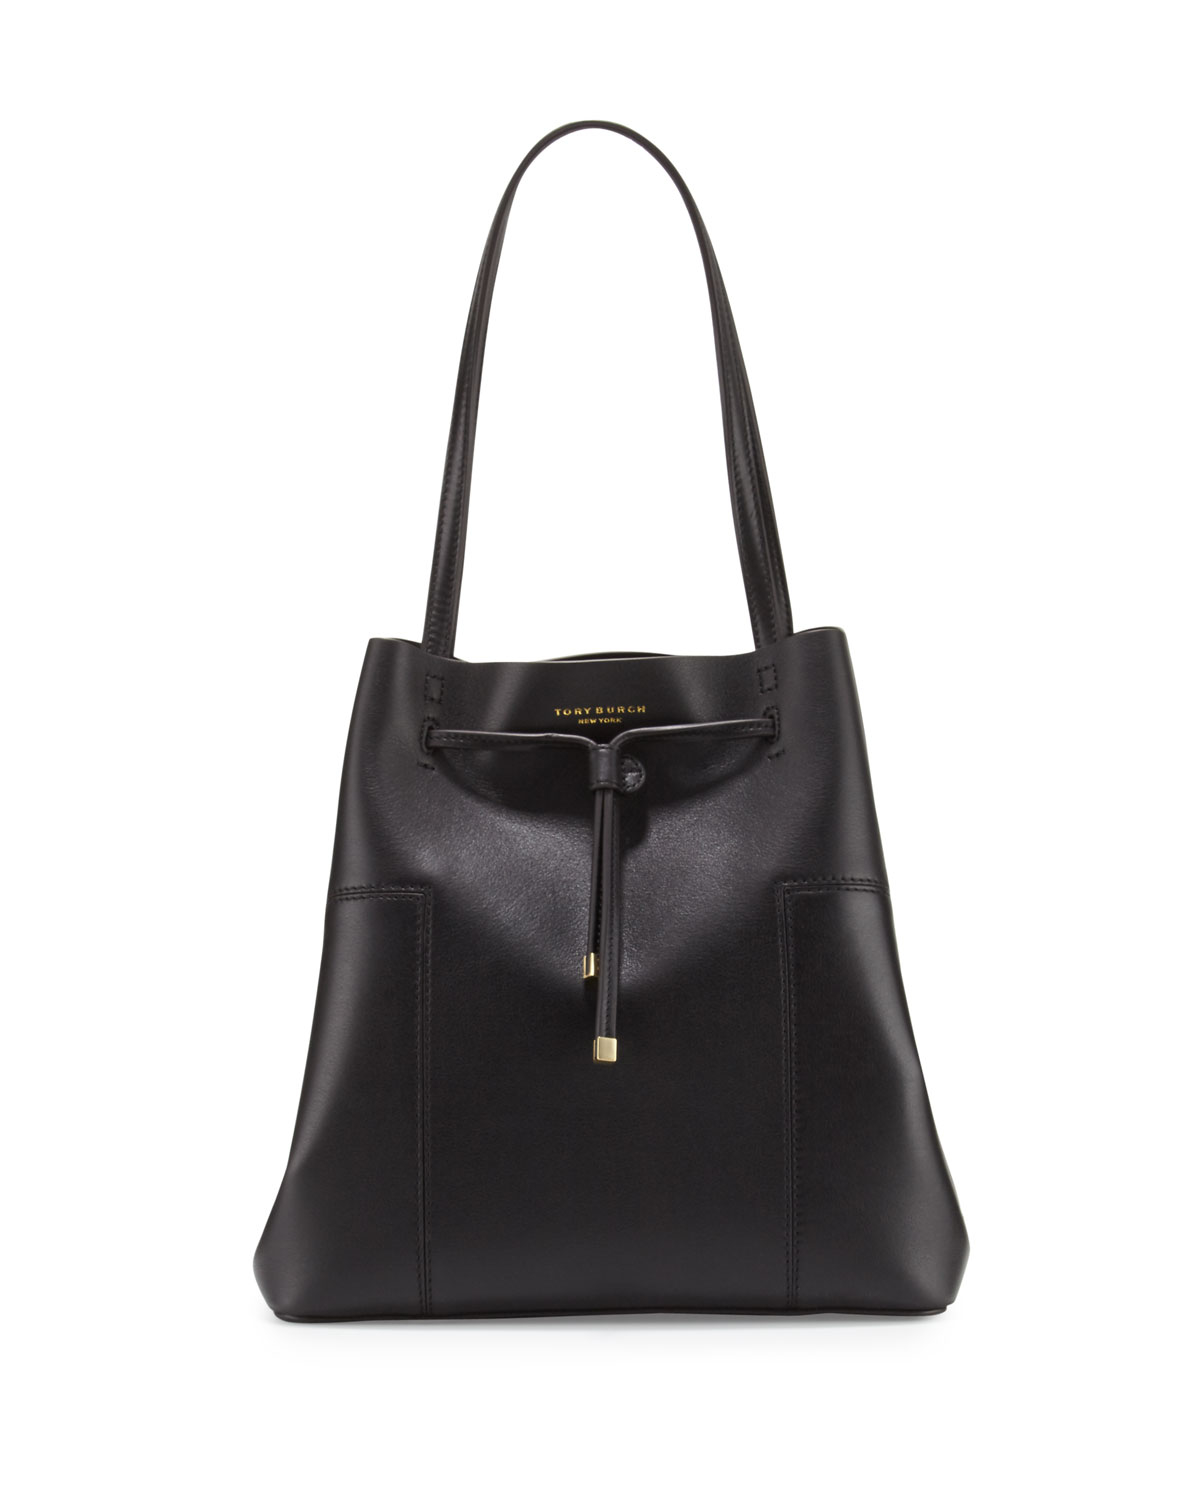 Tory Burch Block T Leather Bucket Tote Bag In Black Lyst